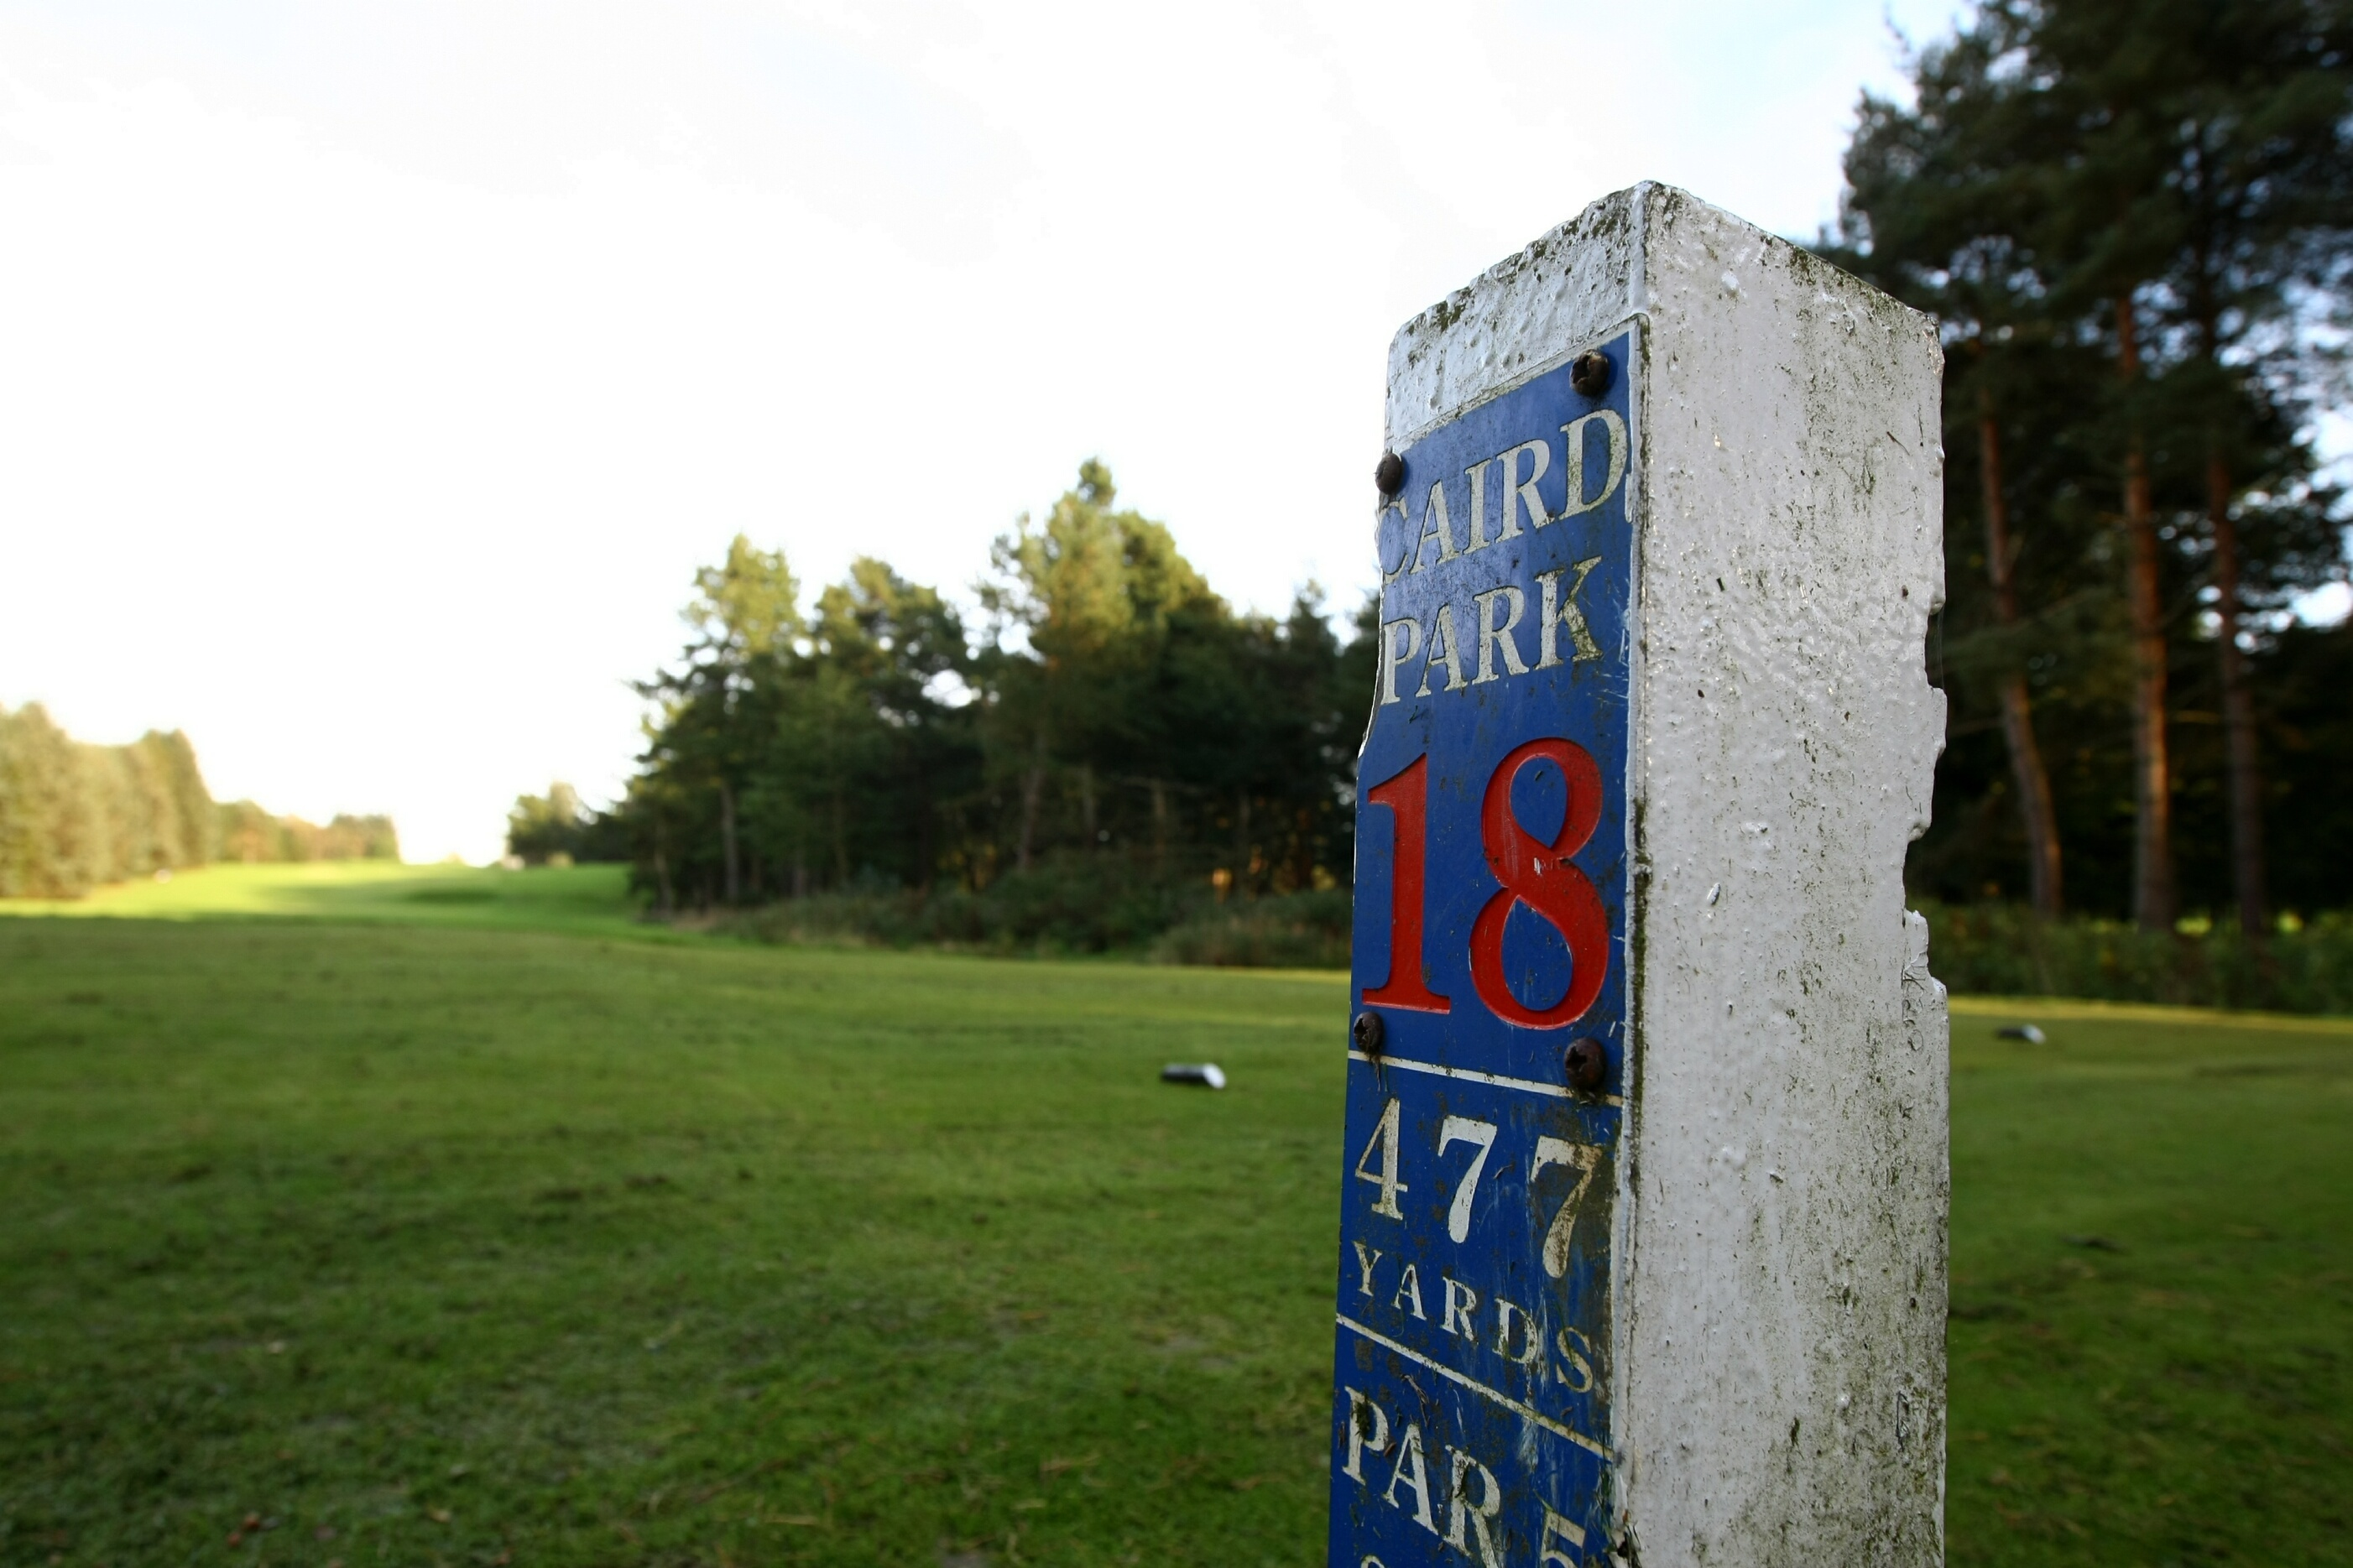 The 18th tee at Caird Park